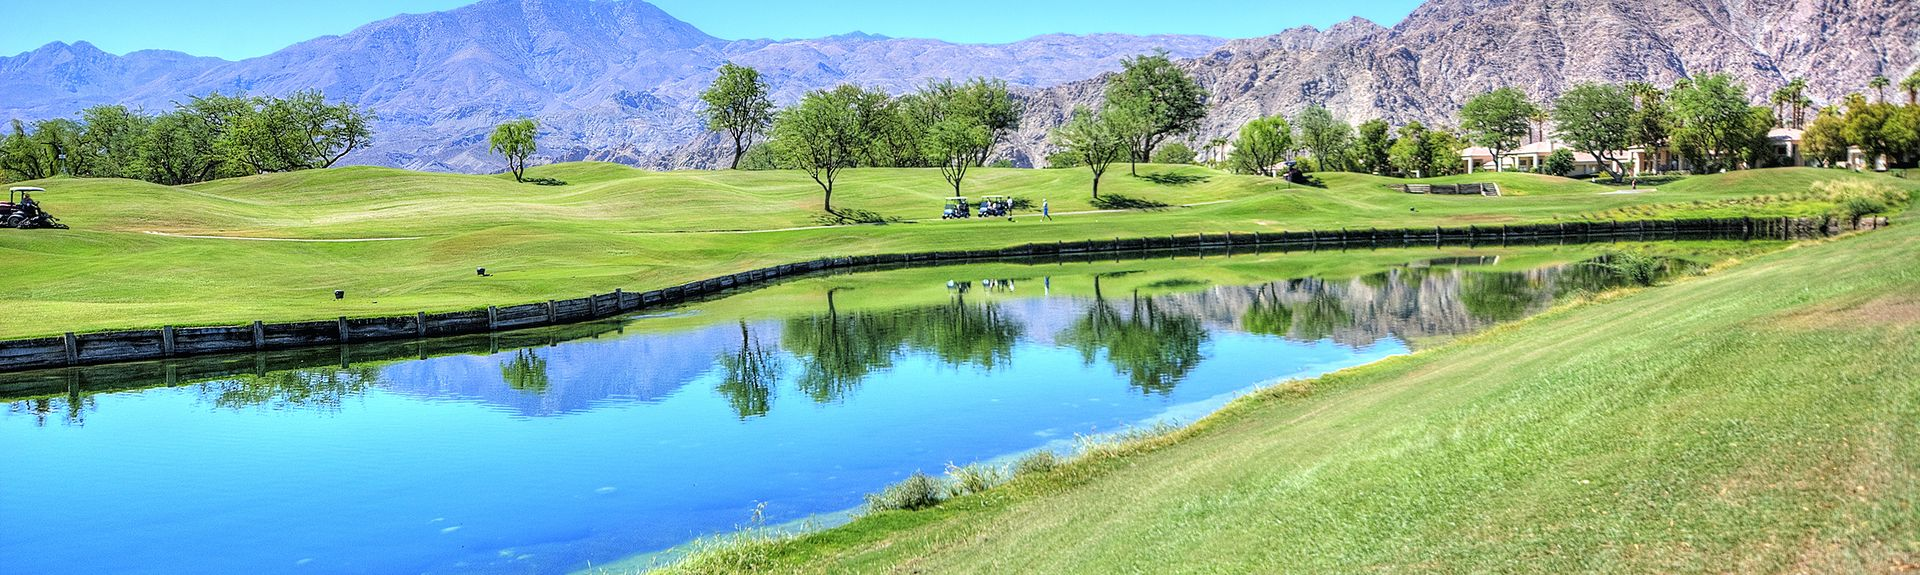 PGA West, La Quinta, California, United States of America